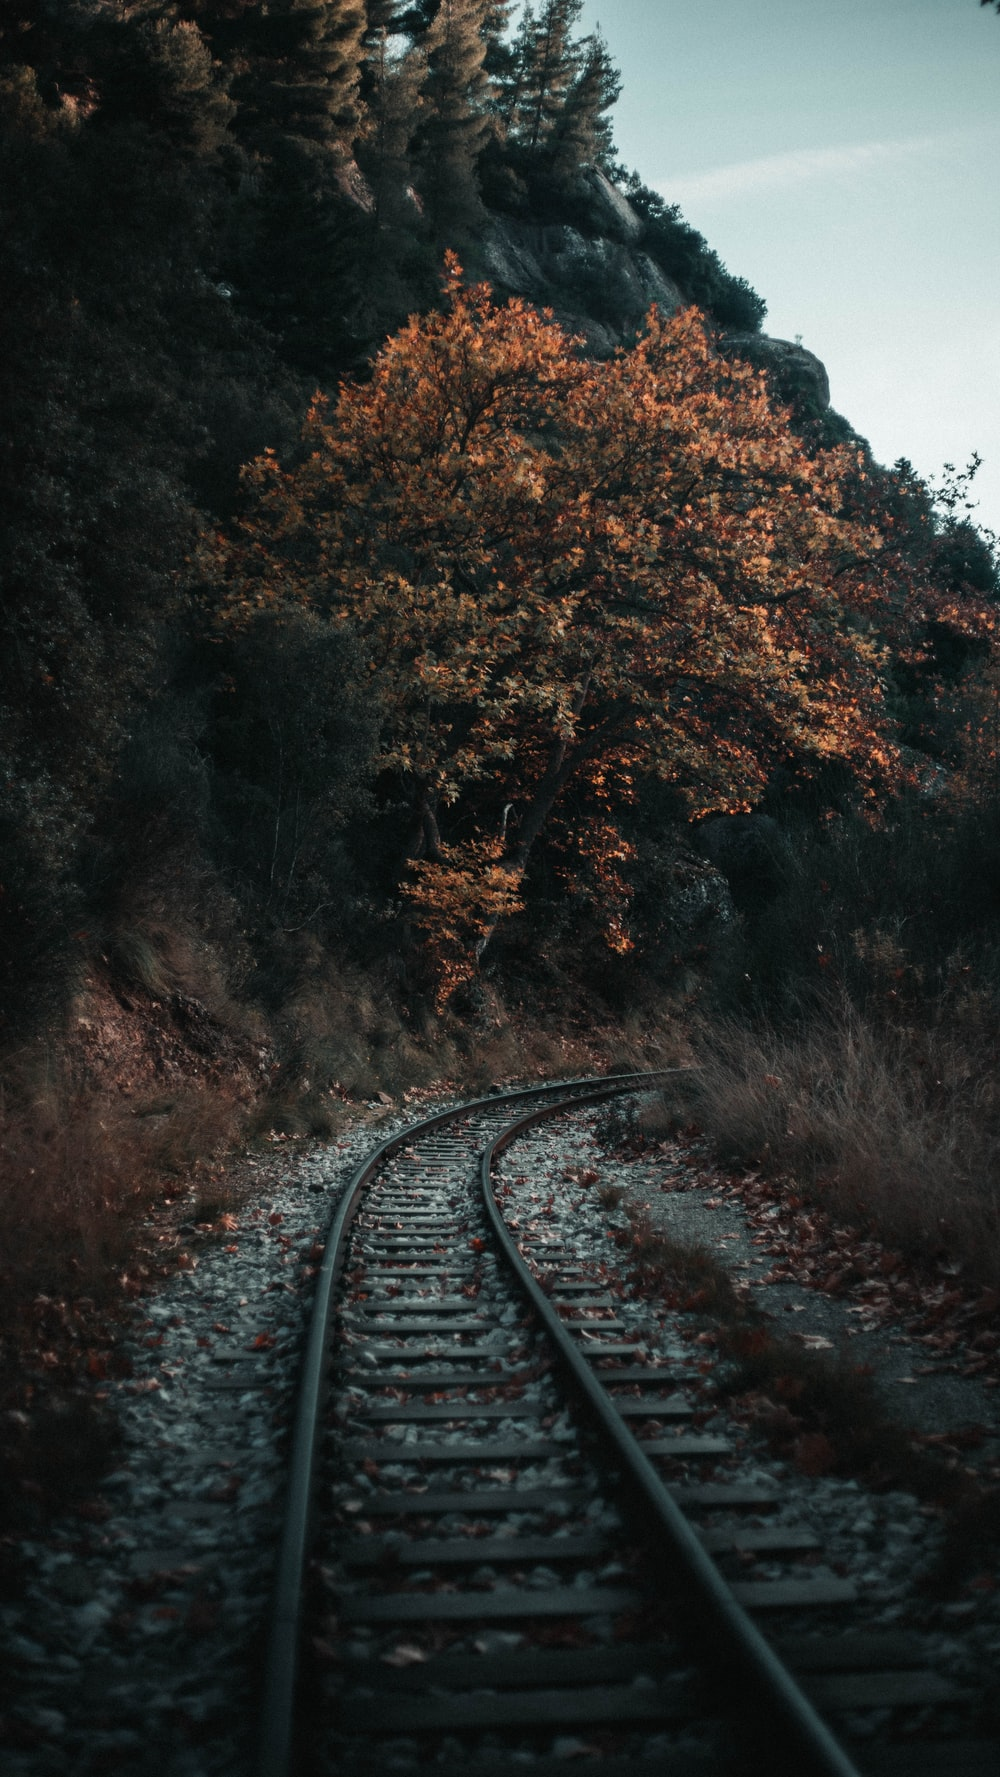 empty train track by tree and mountains